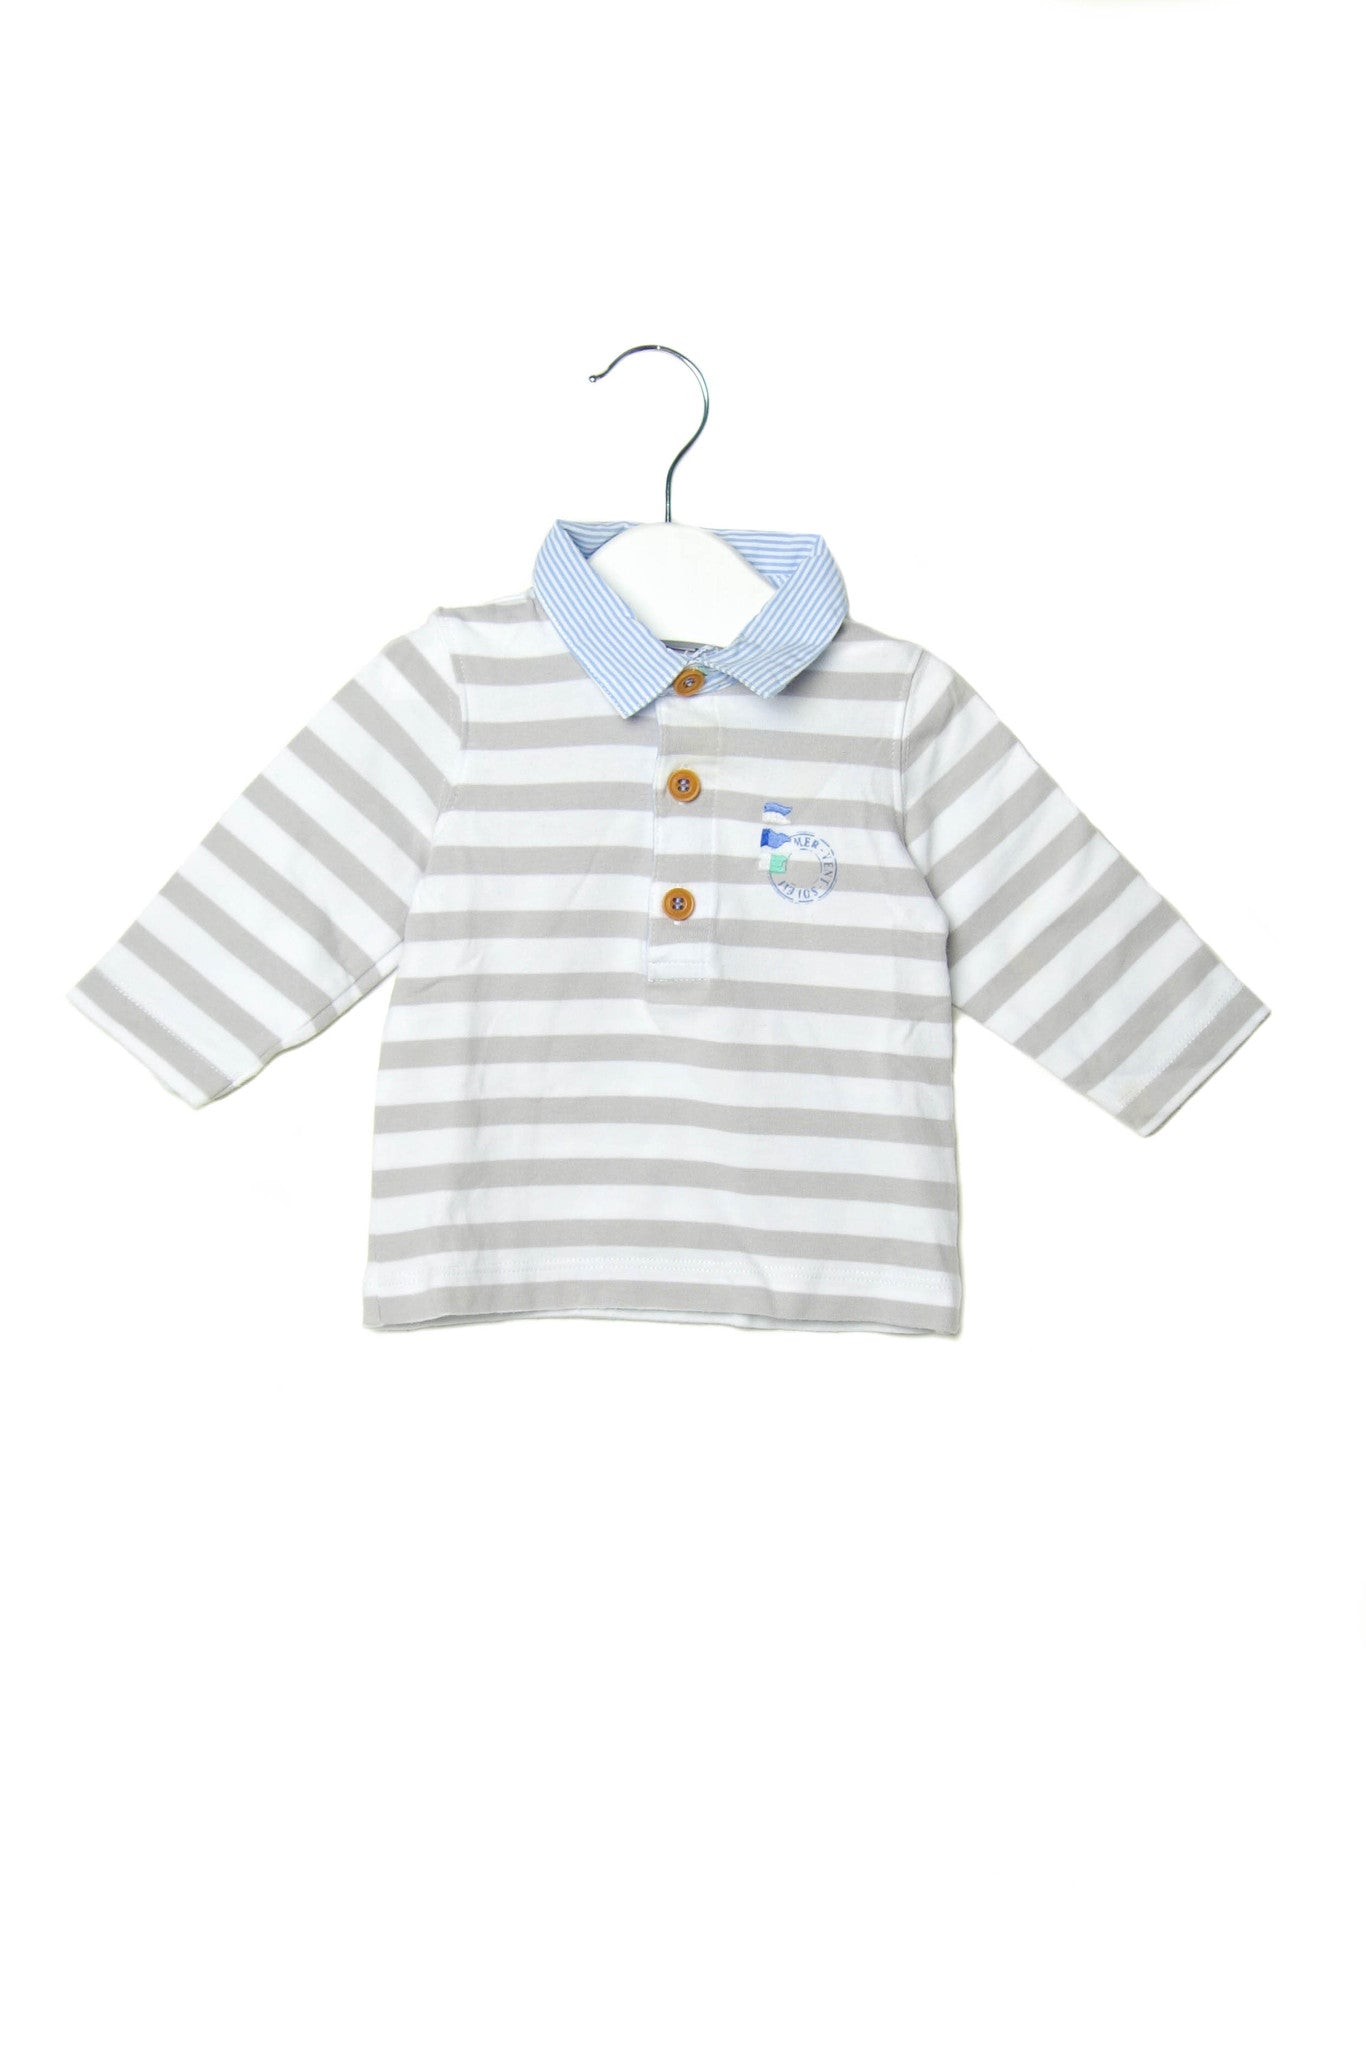 10002091 Jacadi Baby~Polo 6M at Retykle